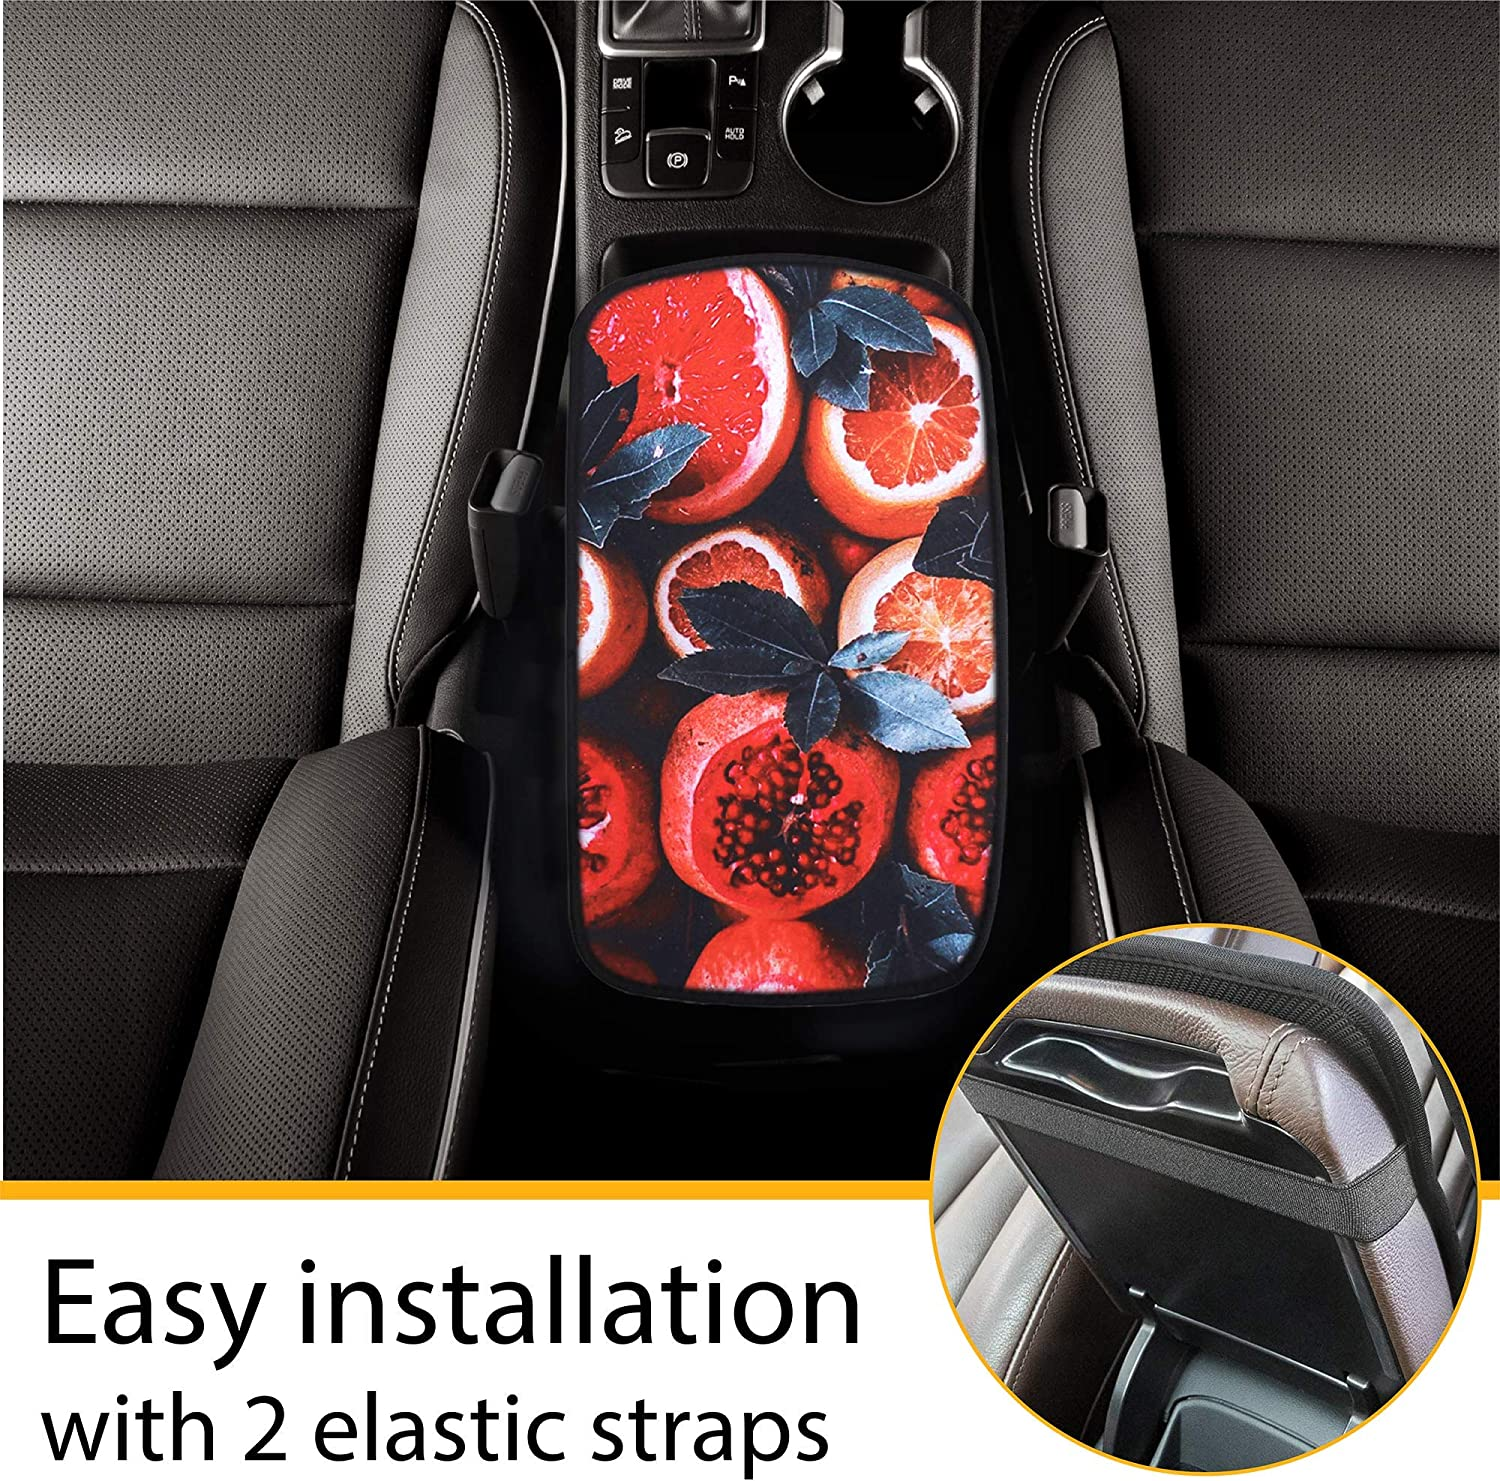 Car Accessories Interior Universal Vehicle Console Covers Pads with Car Coaters GERCHWAY Center Console Armrest Cover for Car